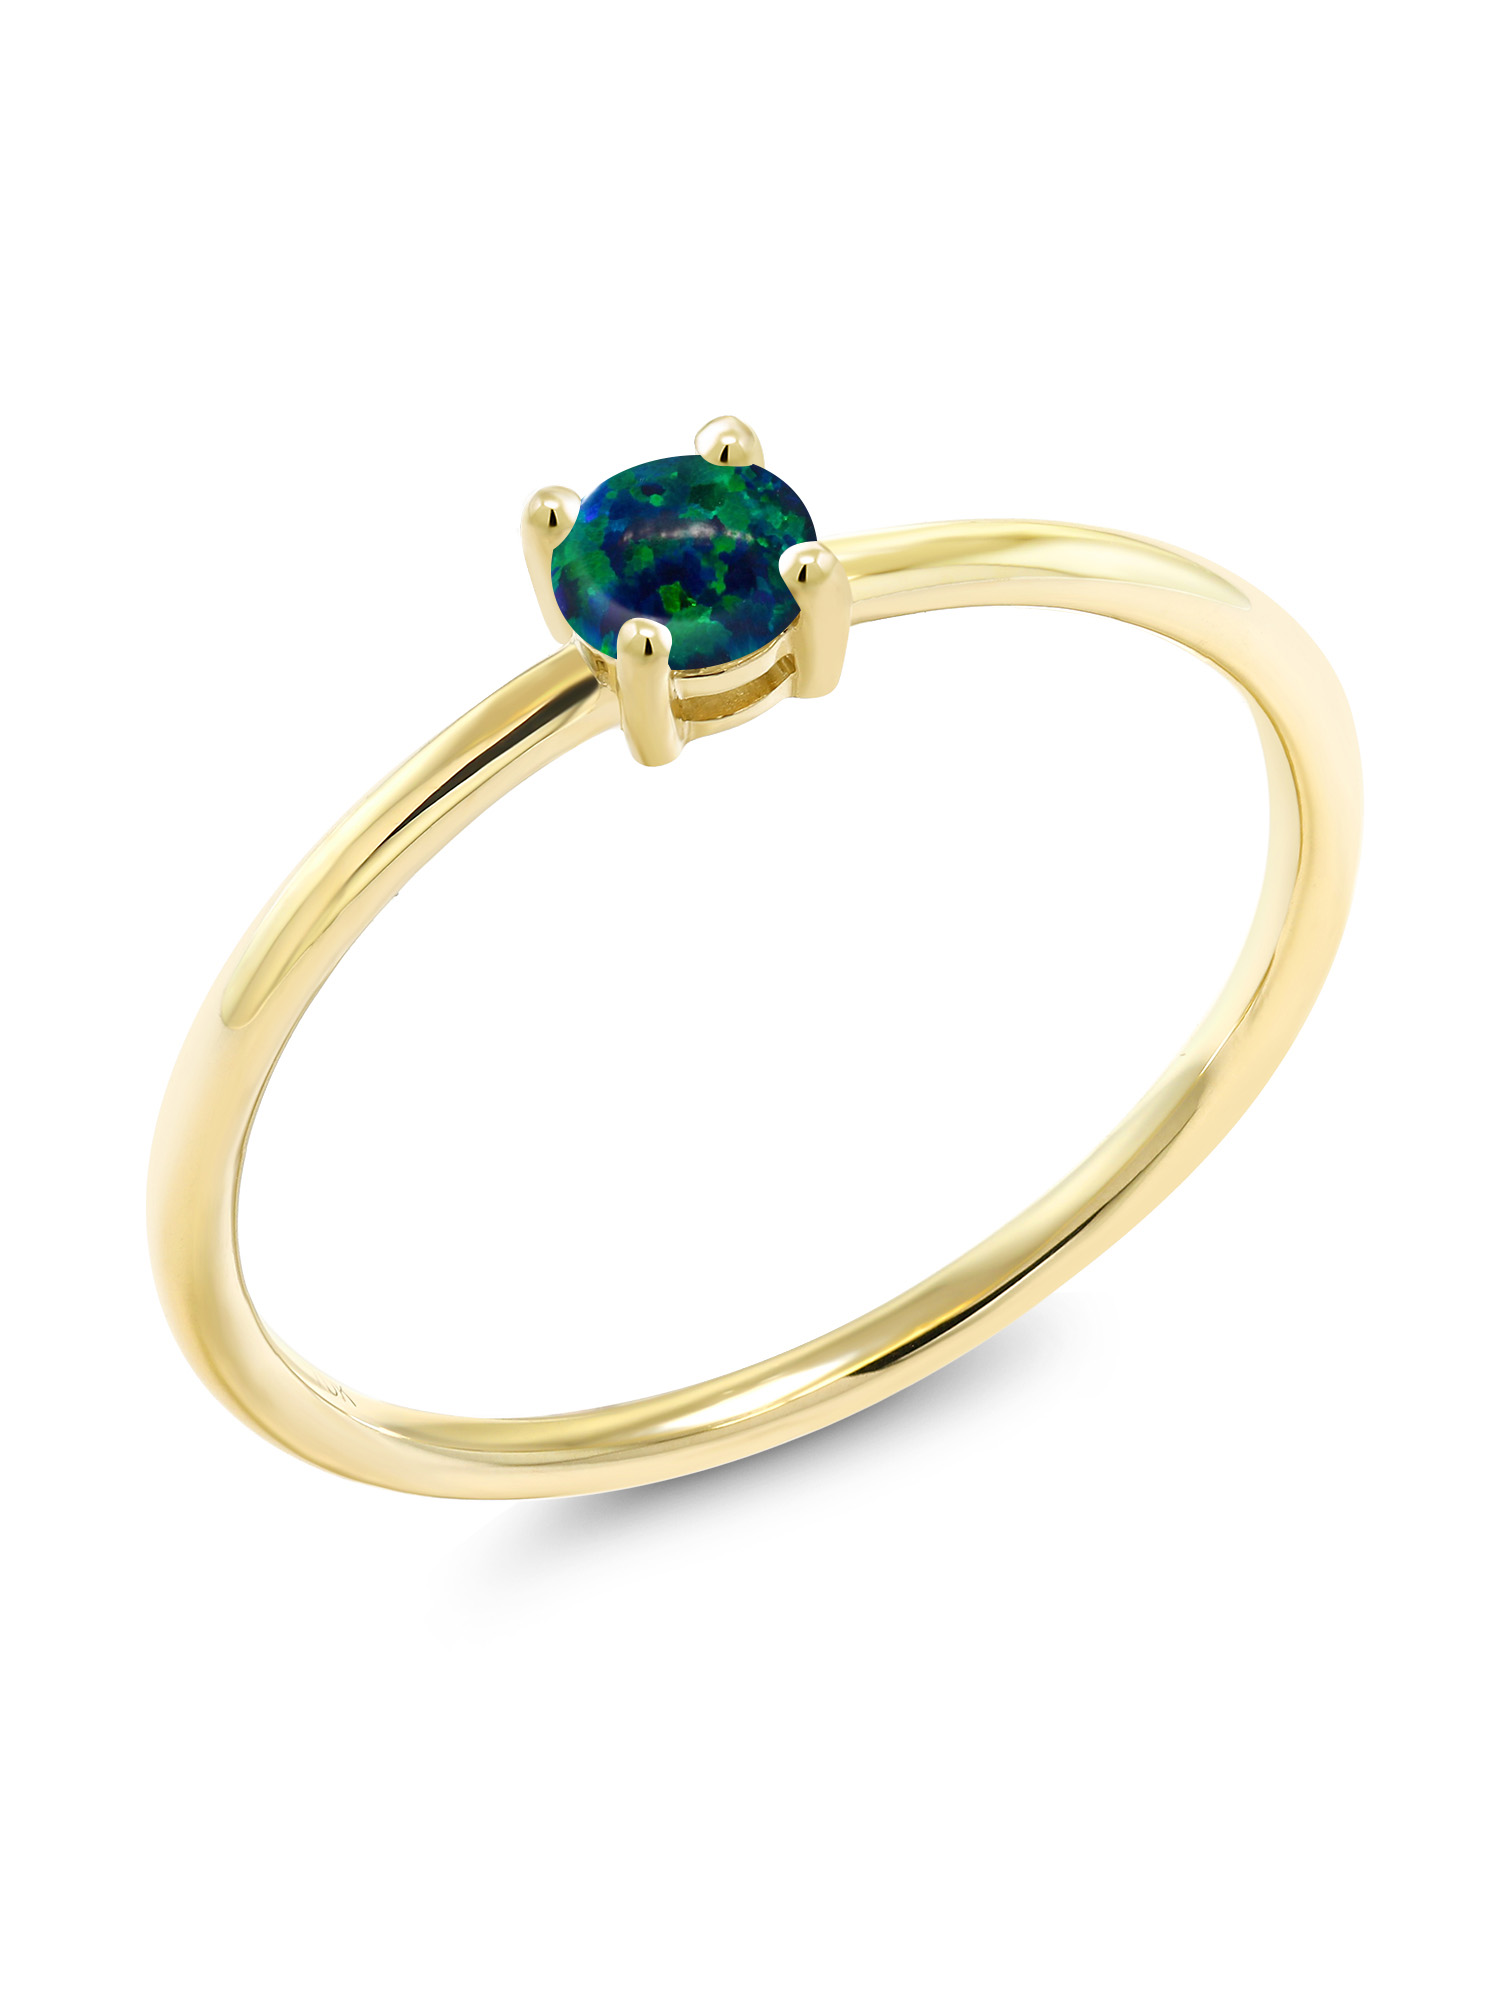 0.25 Ct Round Cabochon Green Simulated Opal 10K Yellow Gold Ring by